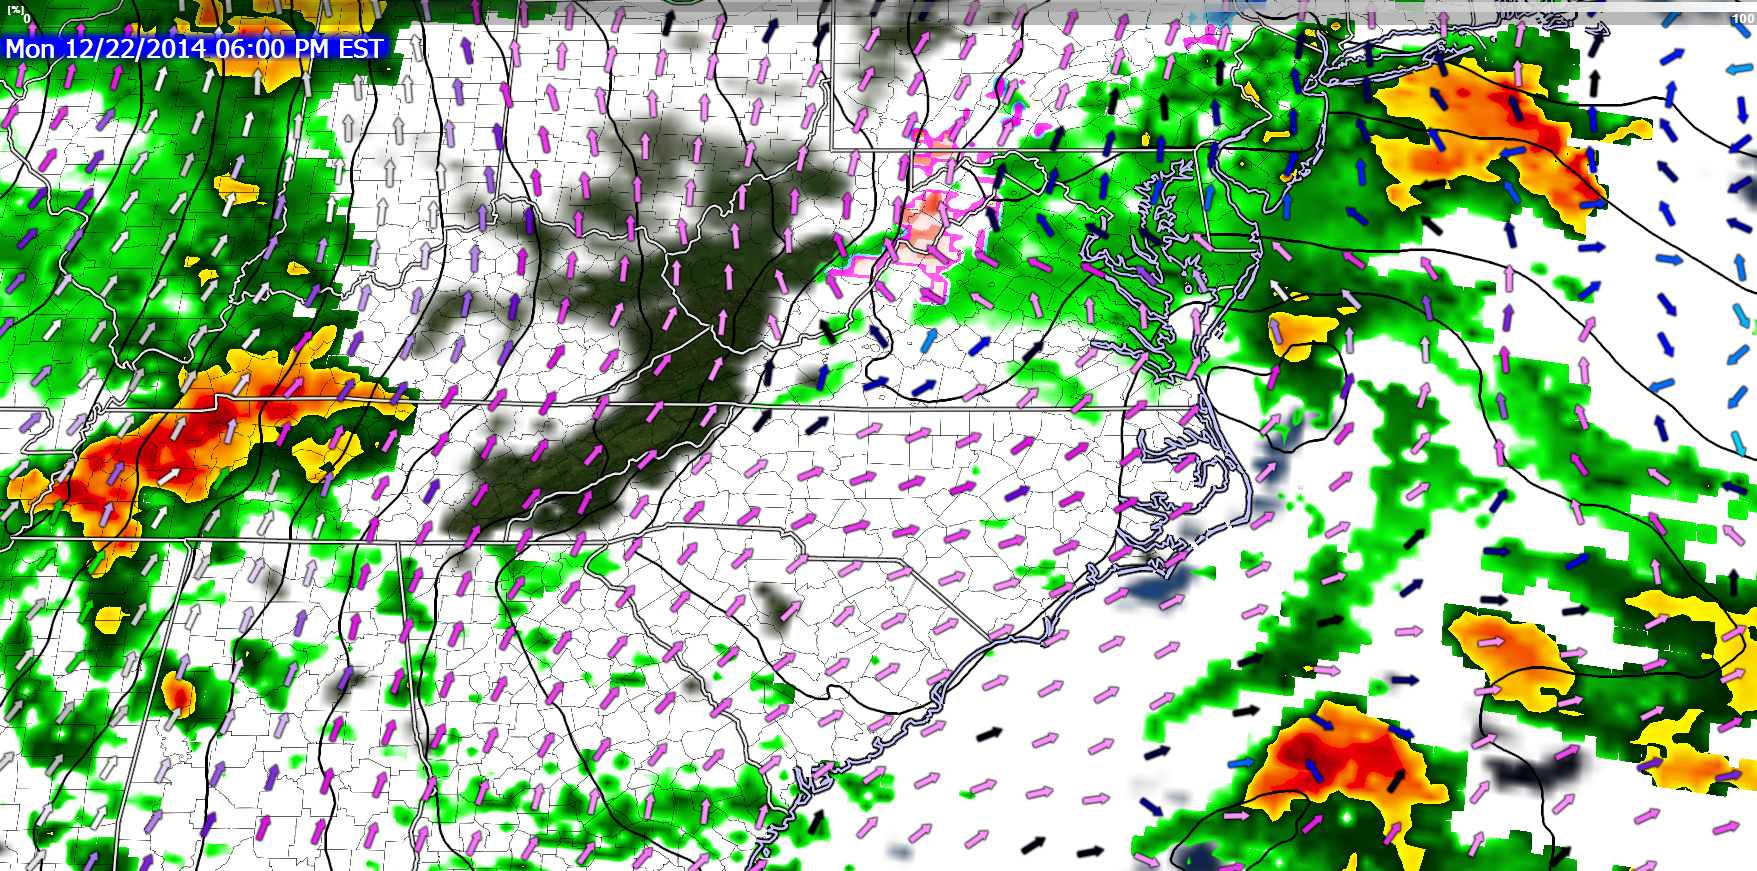 Mid-level southerly winds will result in warm air advection at 850 mb leading to overcast conditions over ENC.